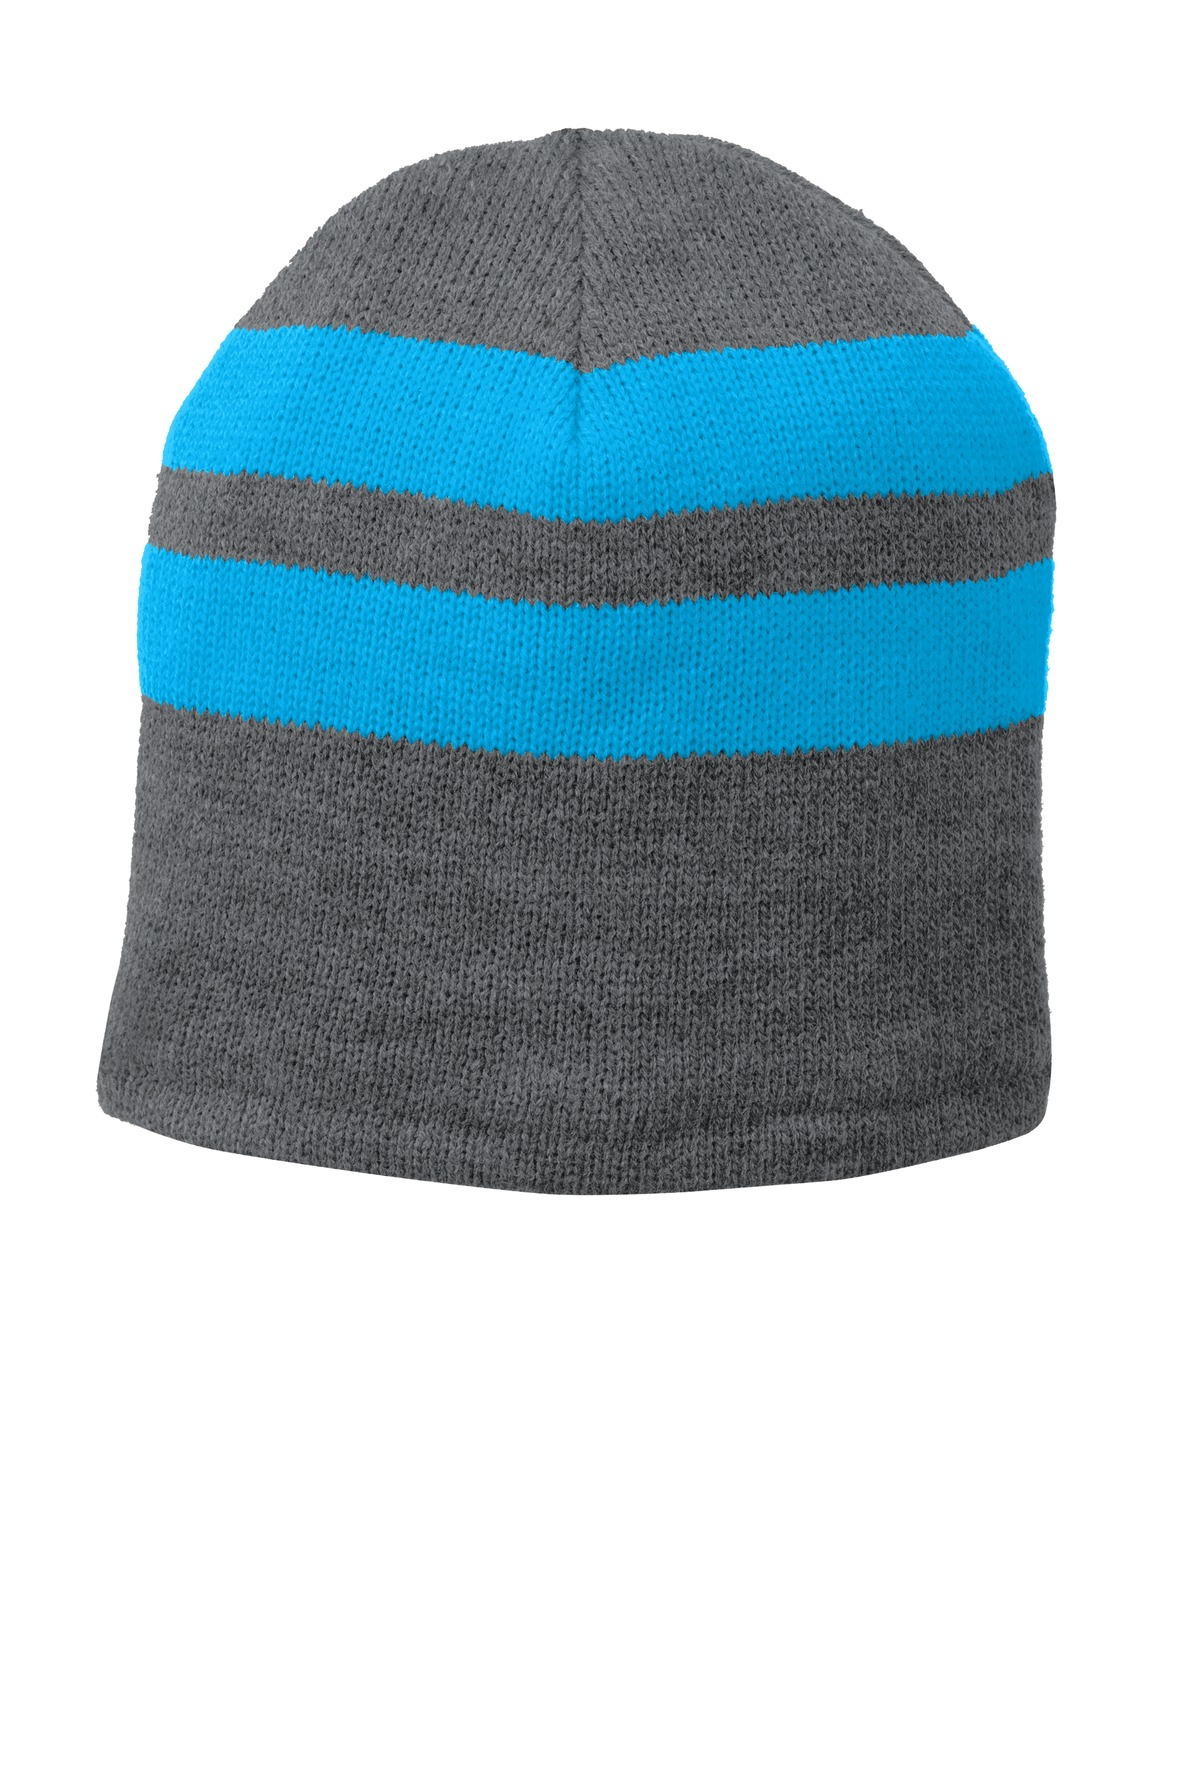 Port and Company Fleece-Lined Striped Beanie Cap. C922